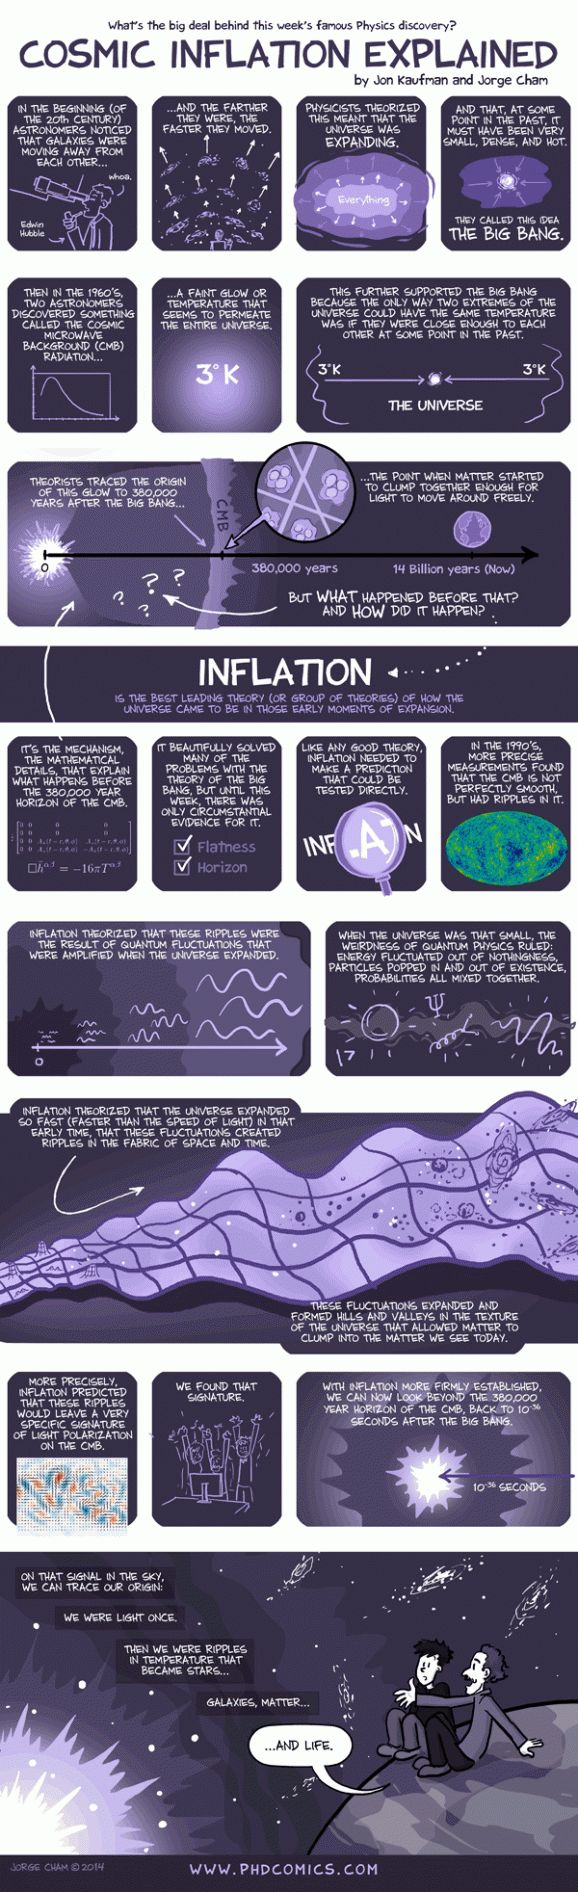 Comic, euhh, cosmic inflation explained (Infographic) | ScienceDump We'll have to see how well this holds up...